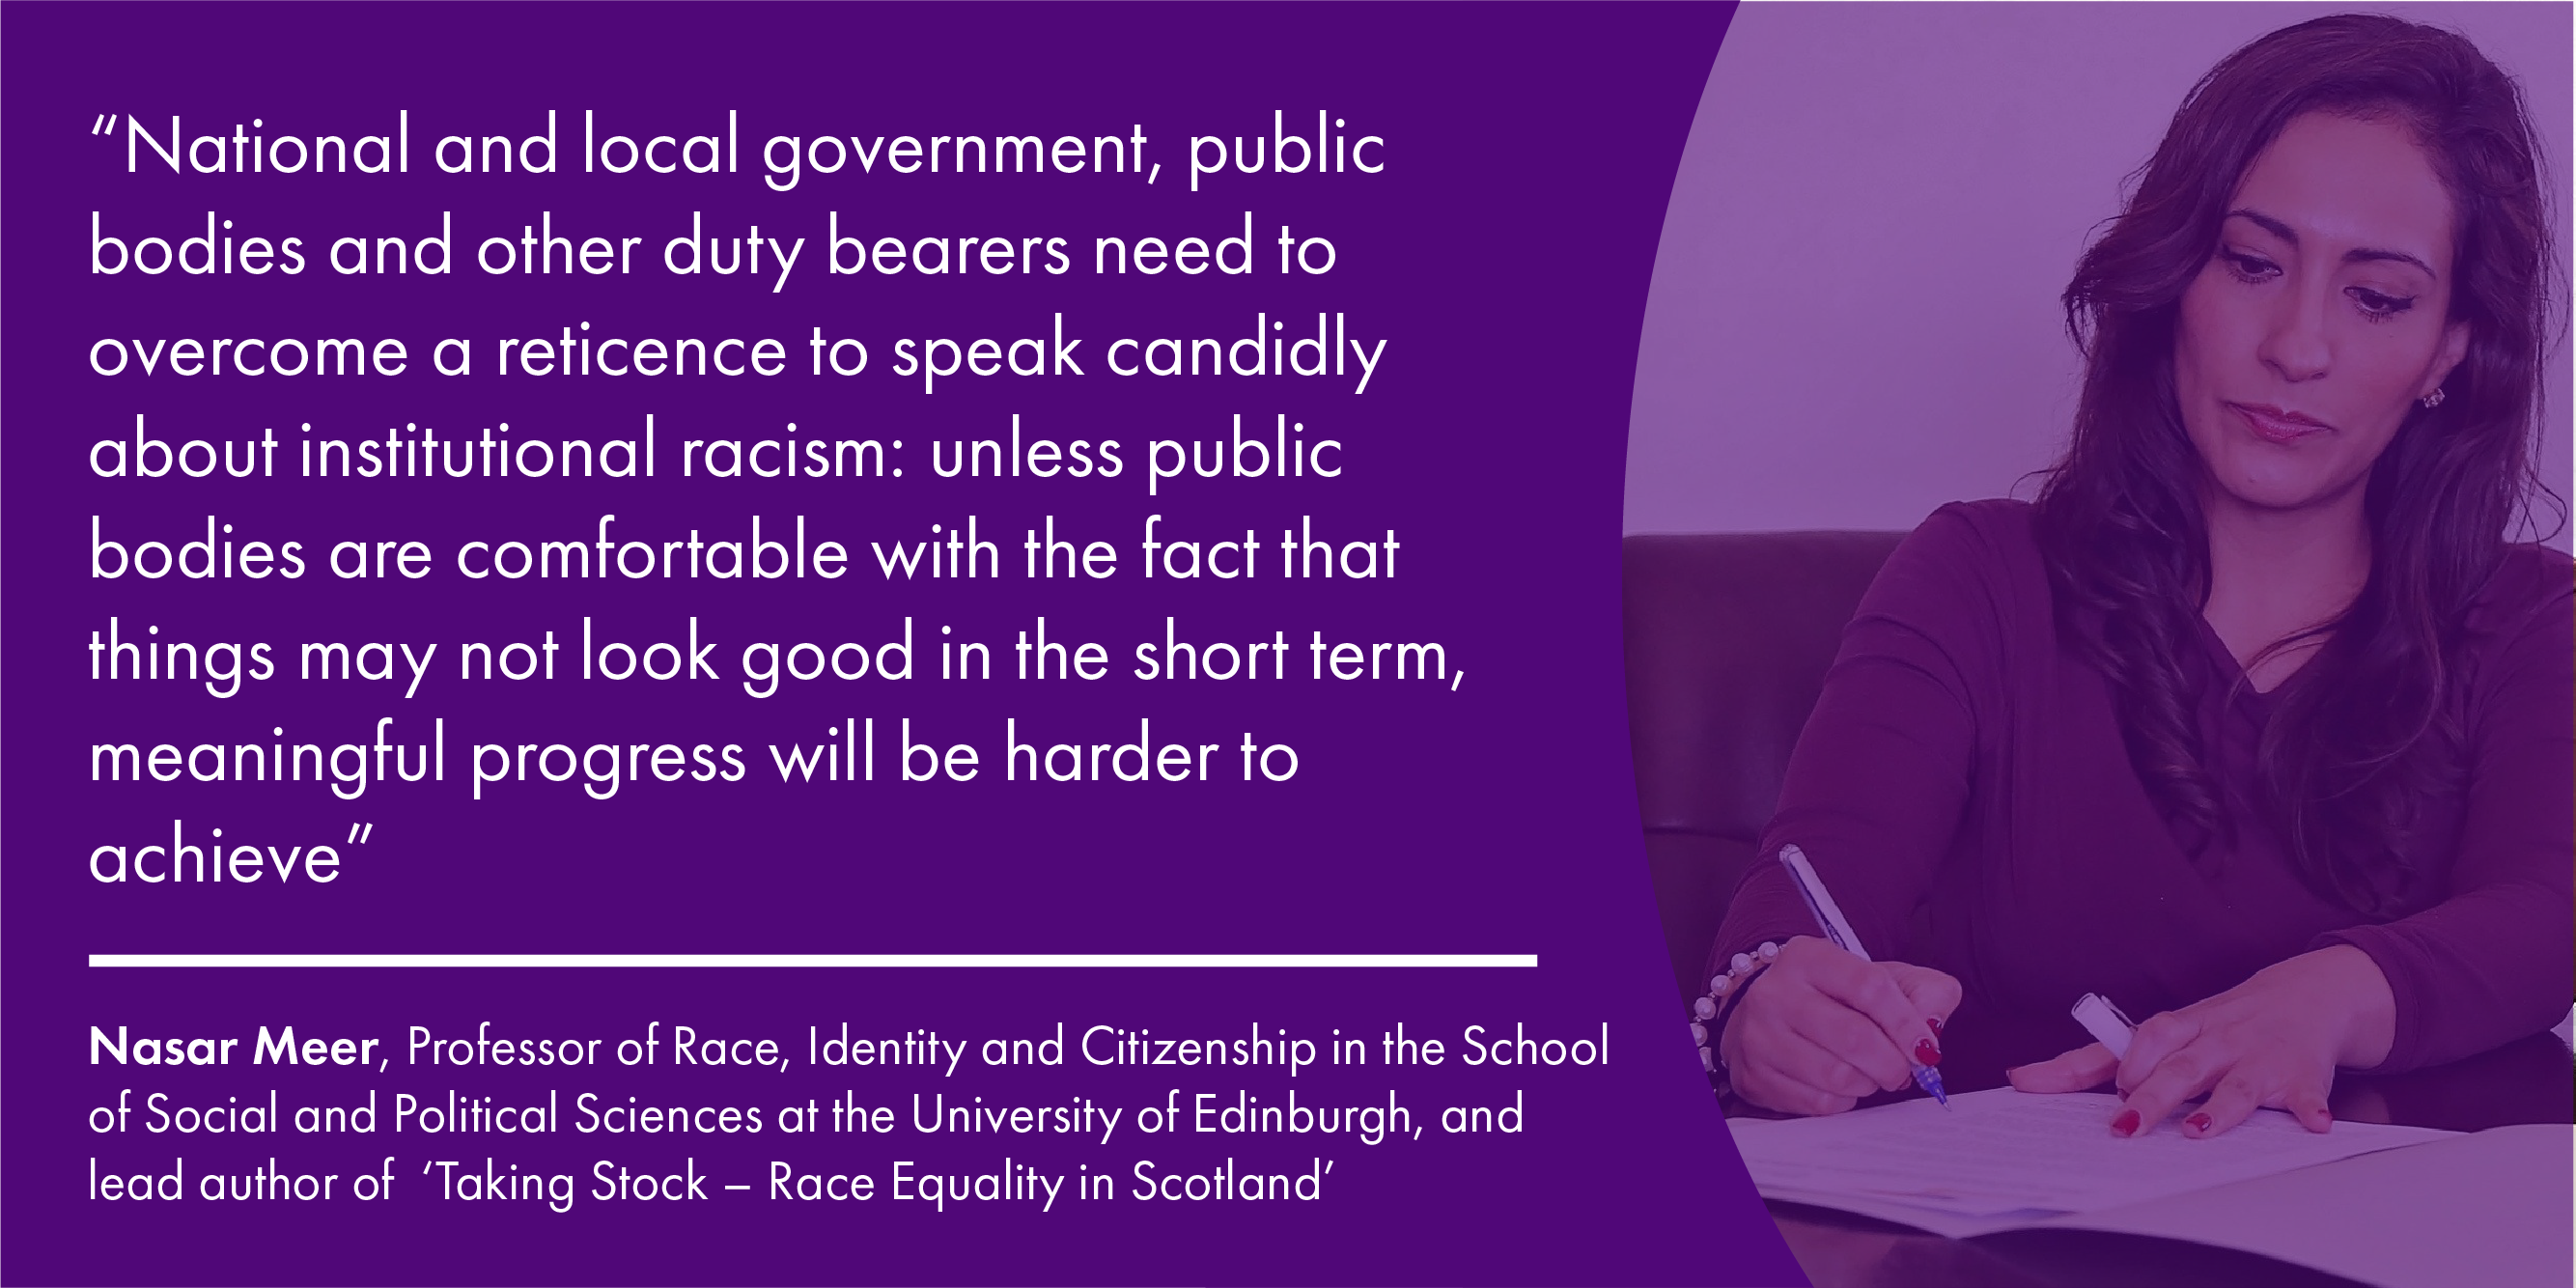 A quote from Professor Nasar Meer talking about the report 'Taking Stock - Race Equality in Scotland' and the need for public authorities to overcome their reticence to talk about institutional racism